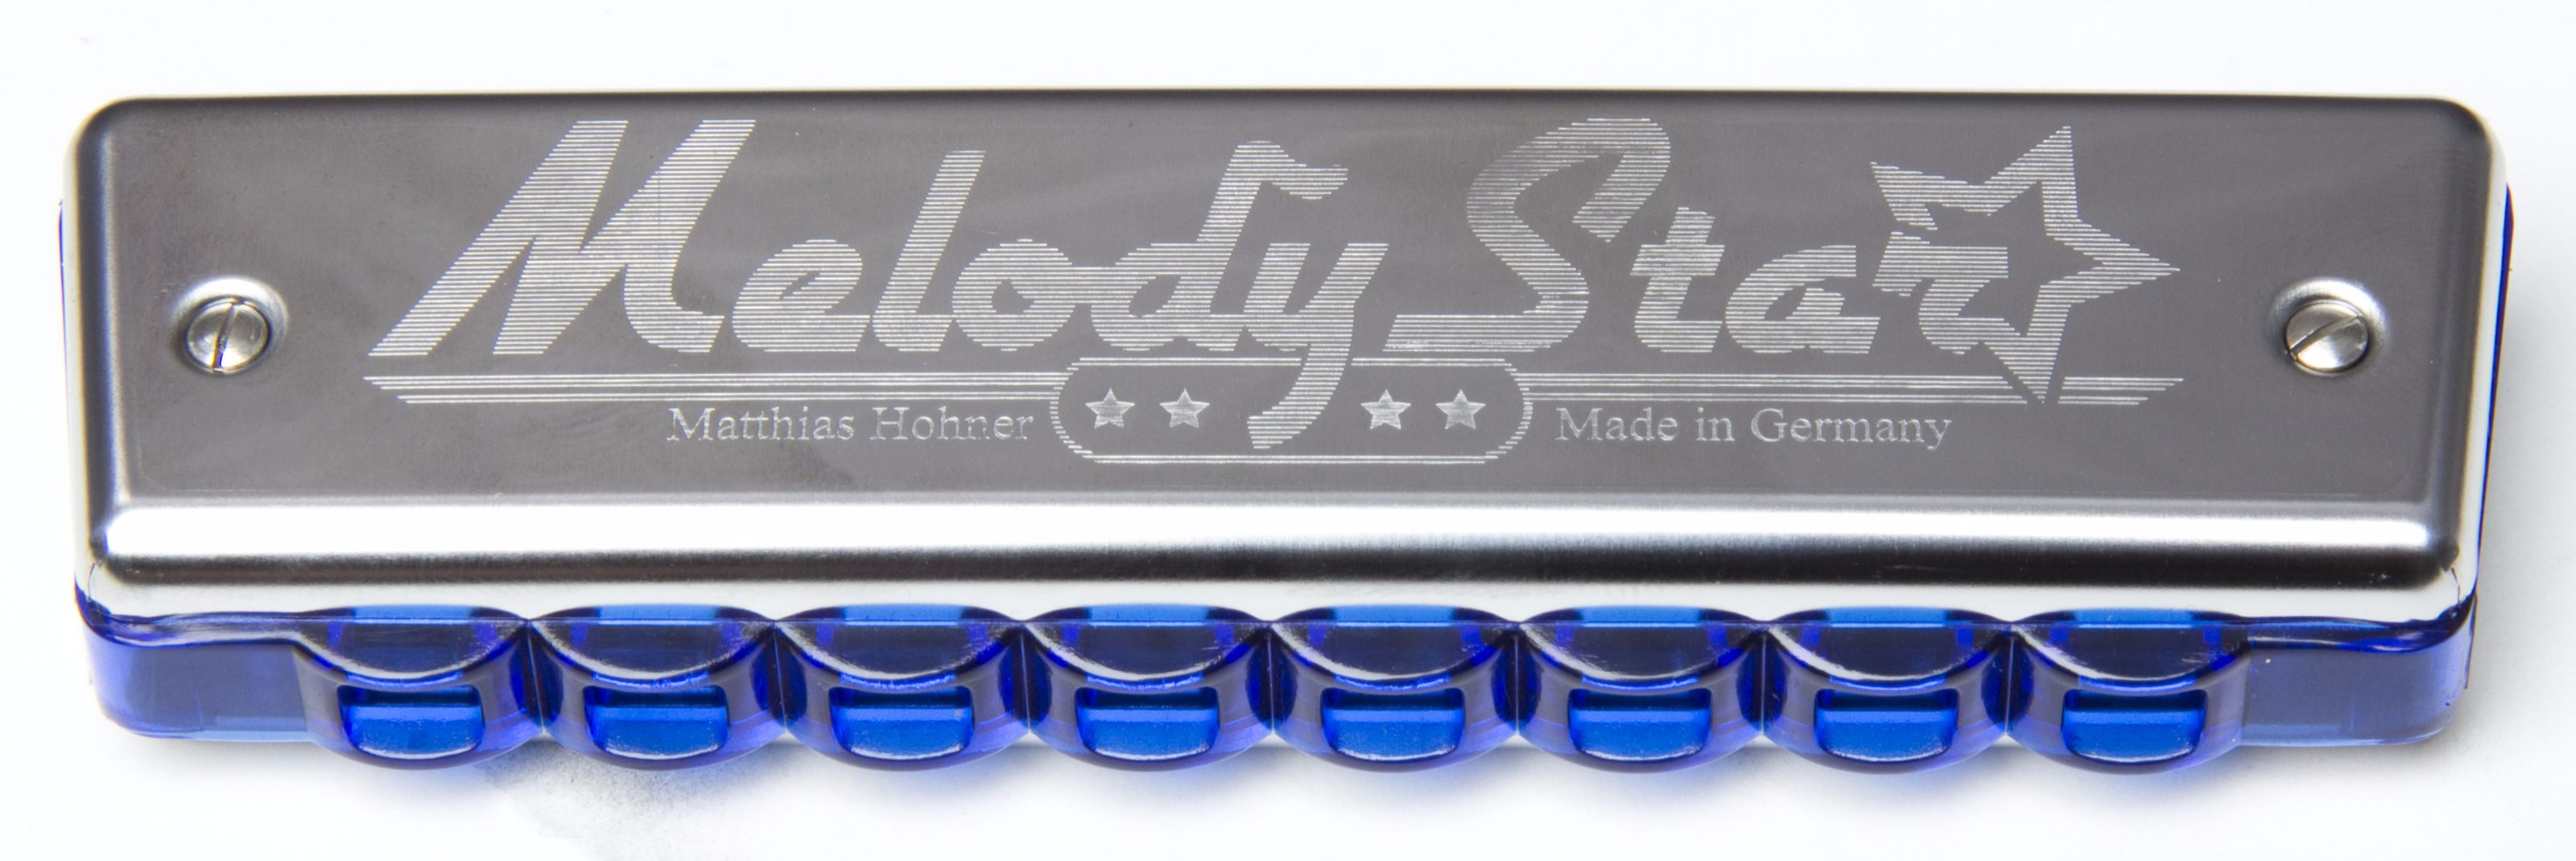 HOHNER Melody Star C New Generation